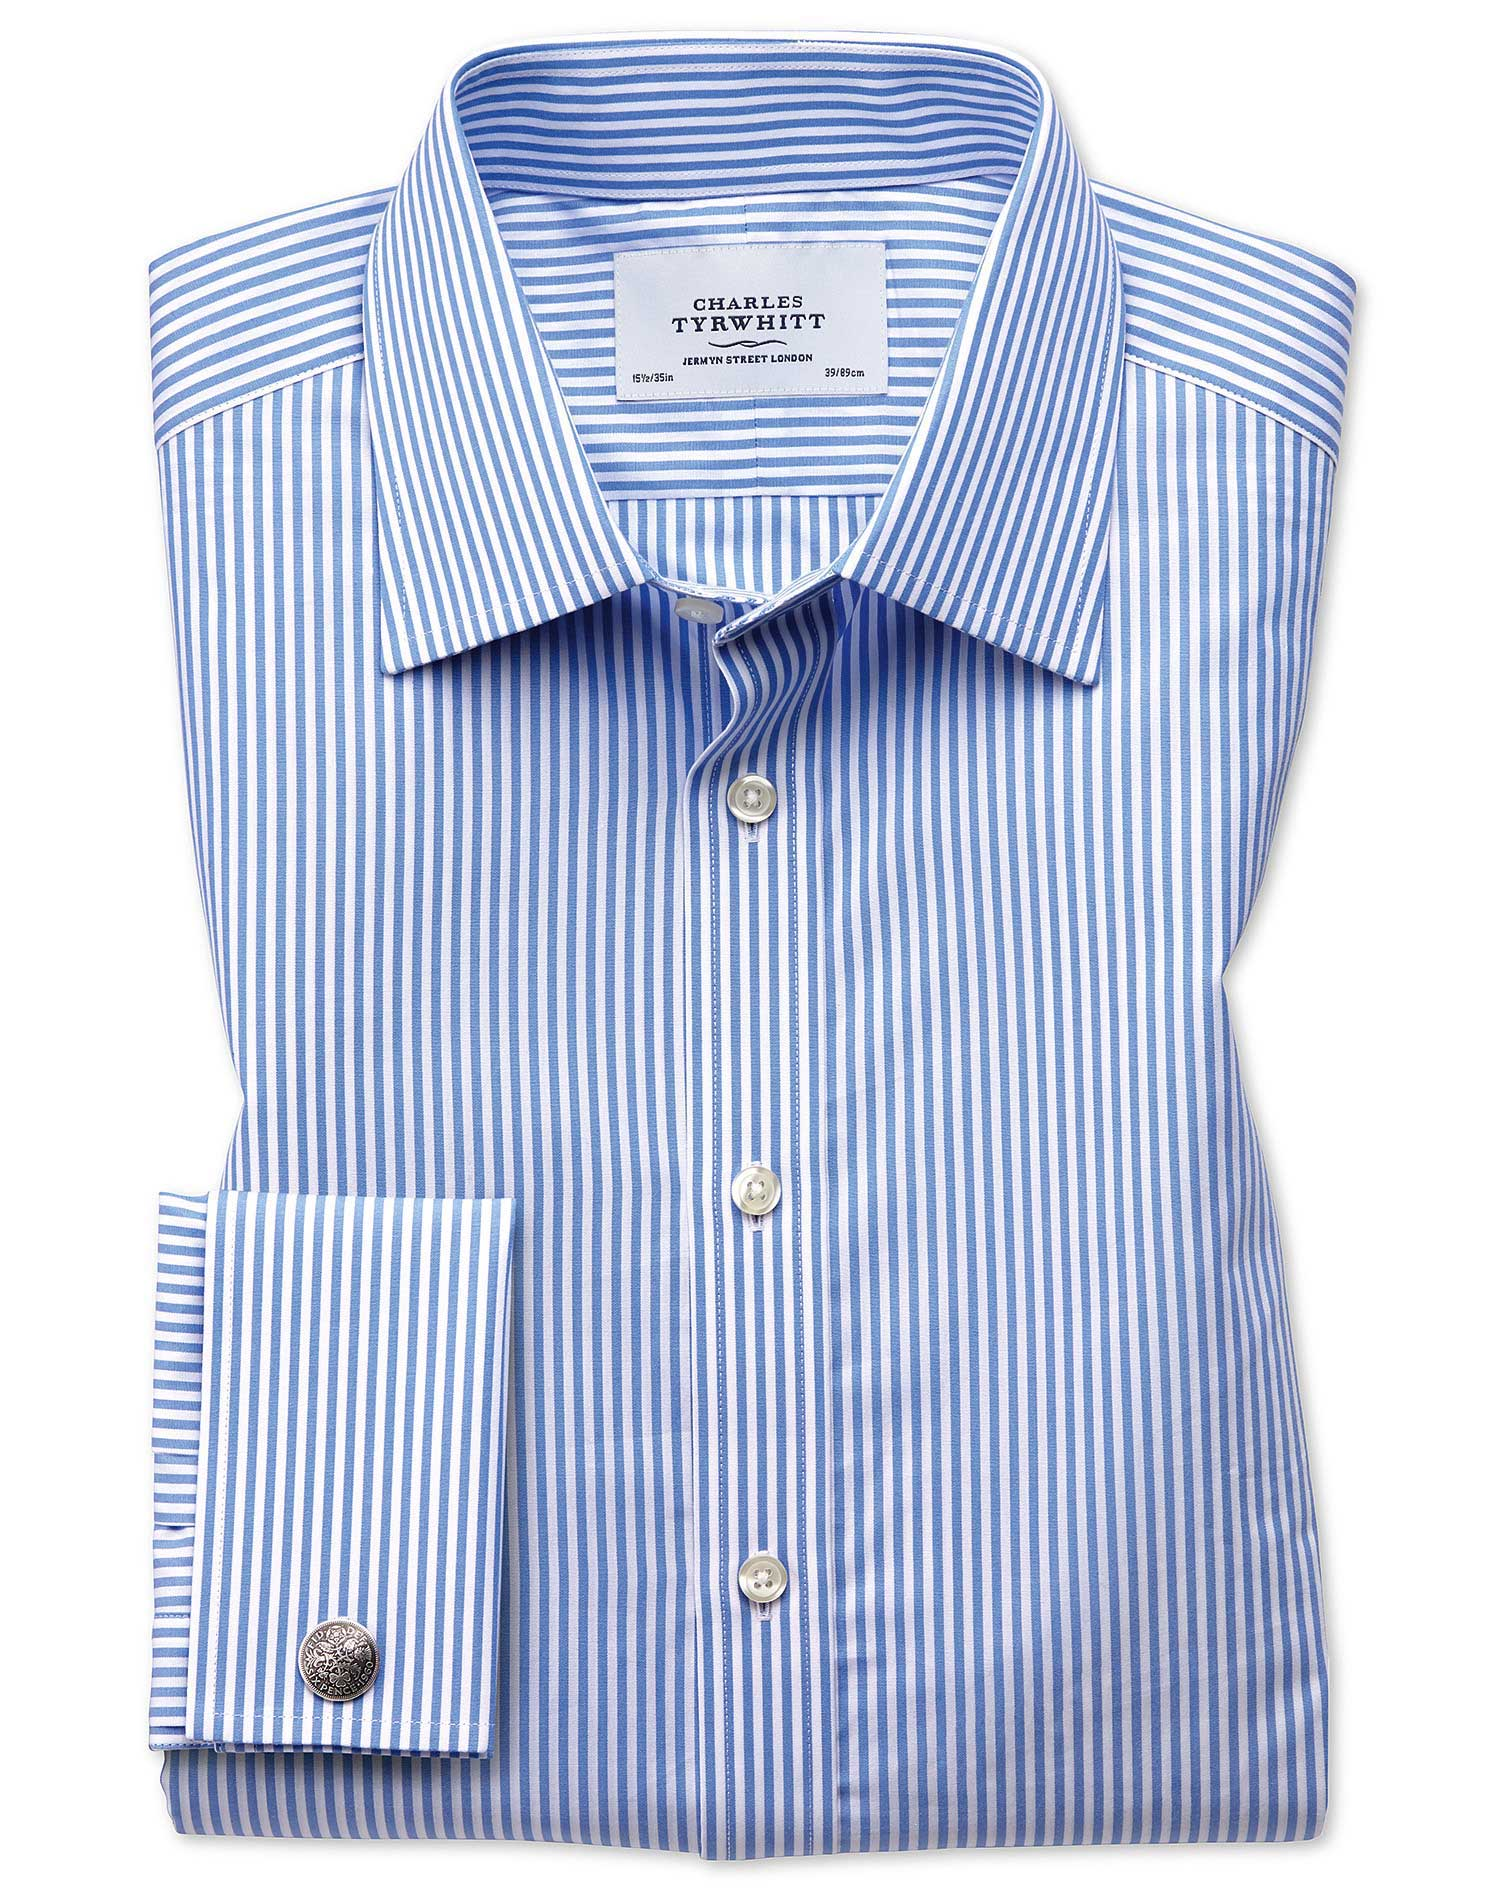 Slim Fit Bengal Stripe Sky Blue Cotton Formal Shirt Single Cuff Size 16/38 by Charles Tyrwhitt